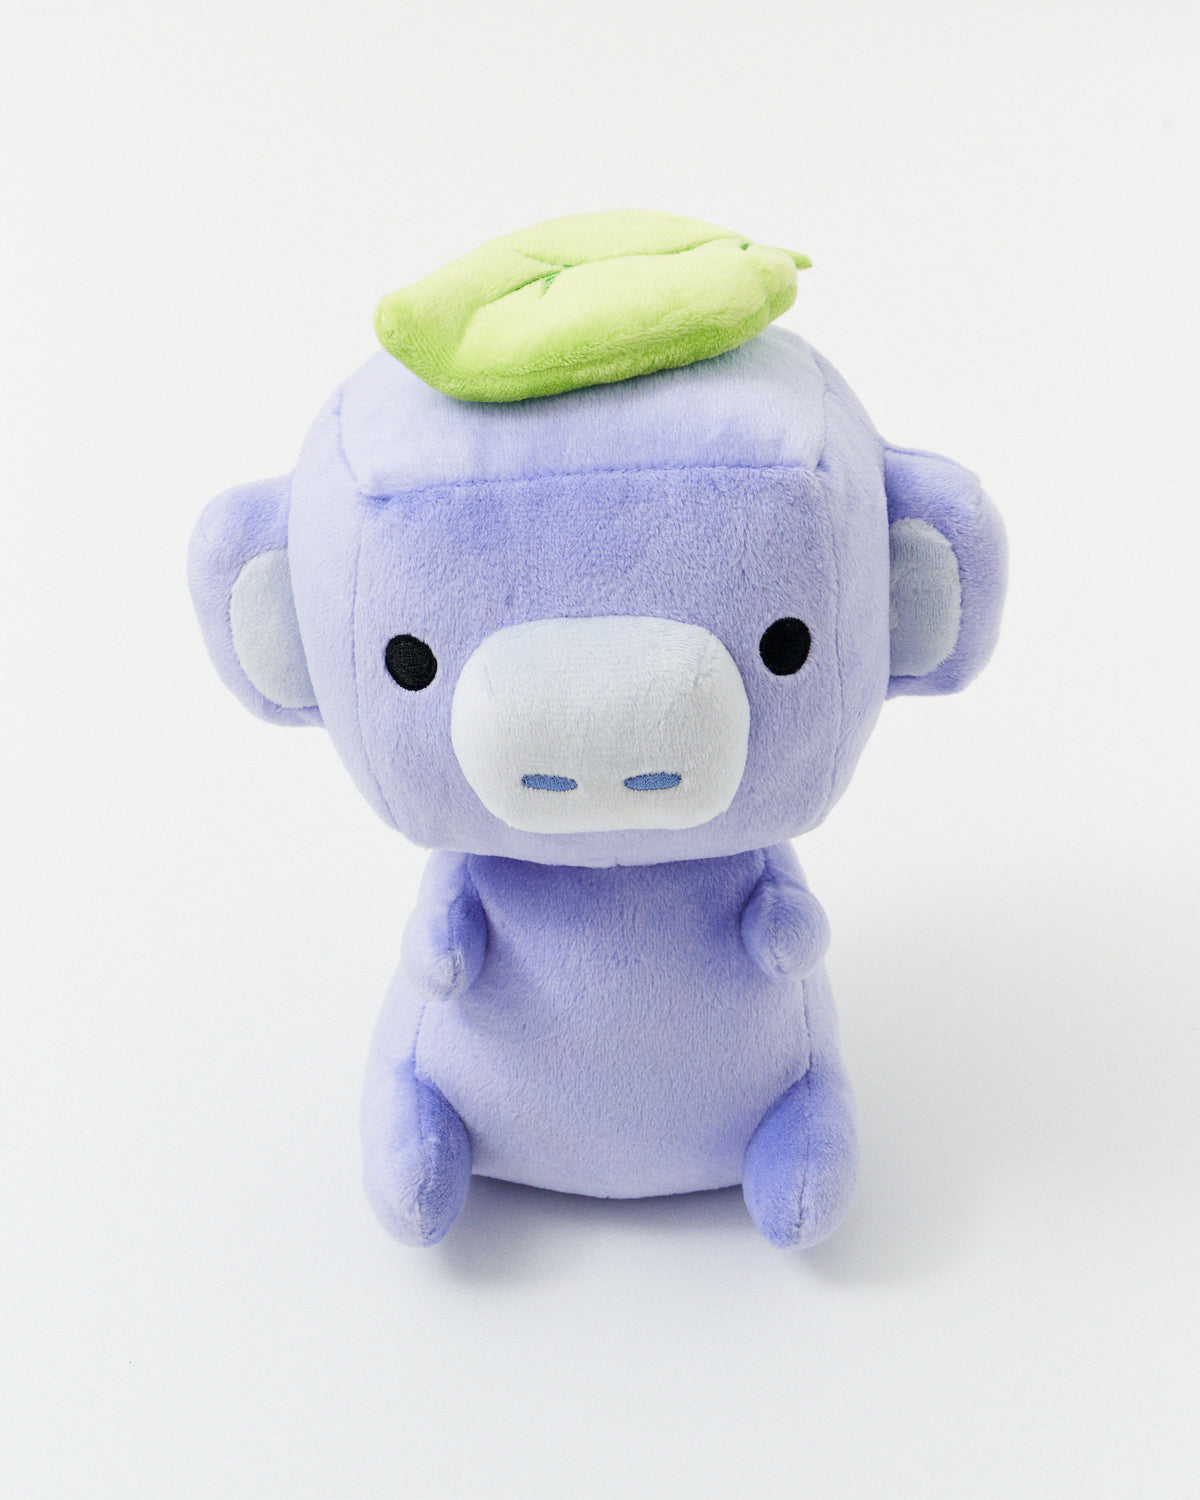 Wumpus Plushie - Snowsgiving Winners!